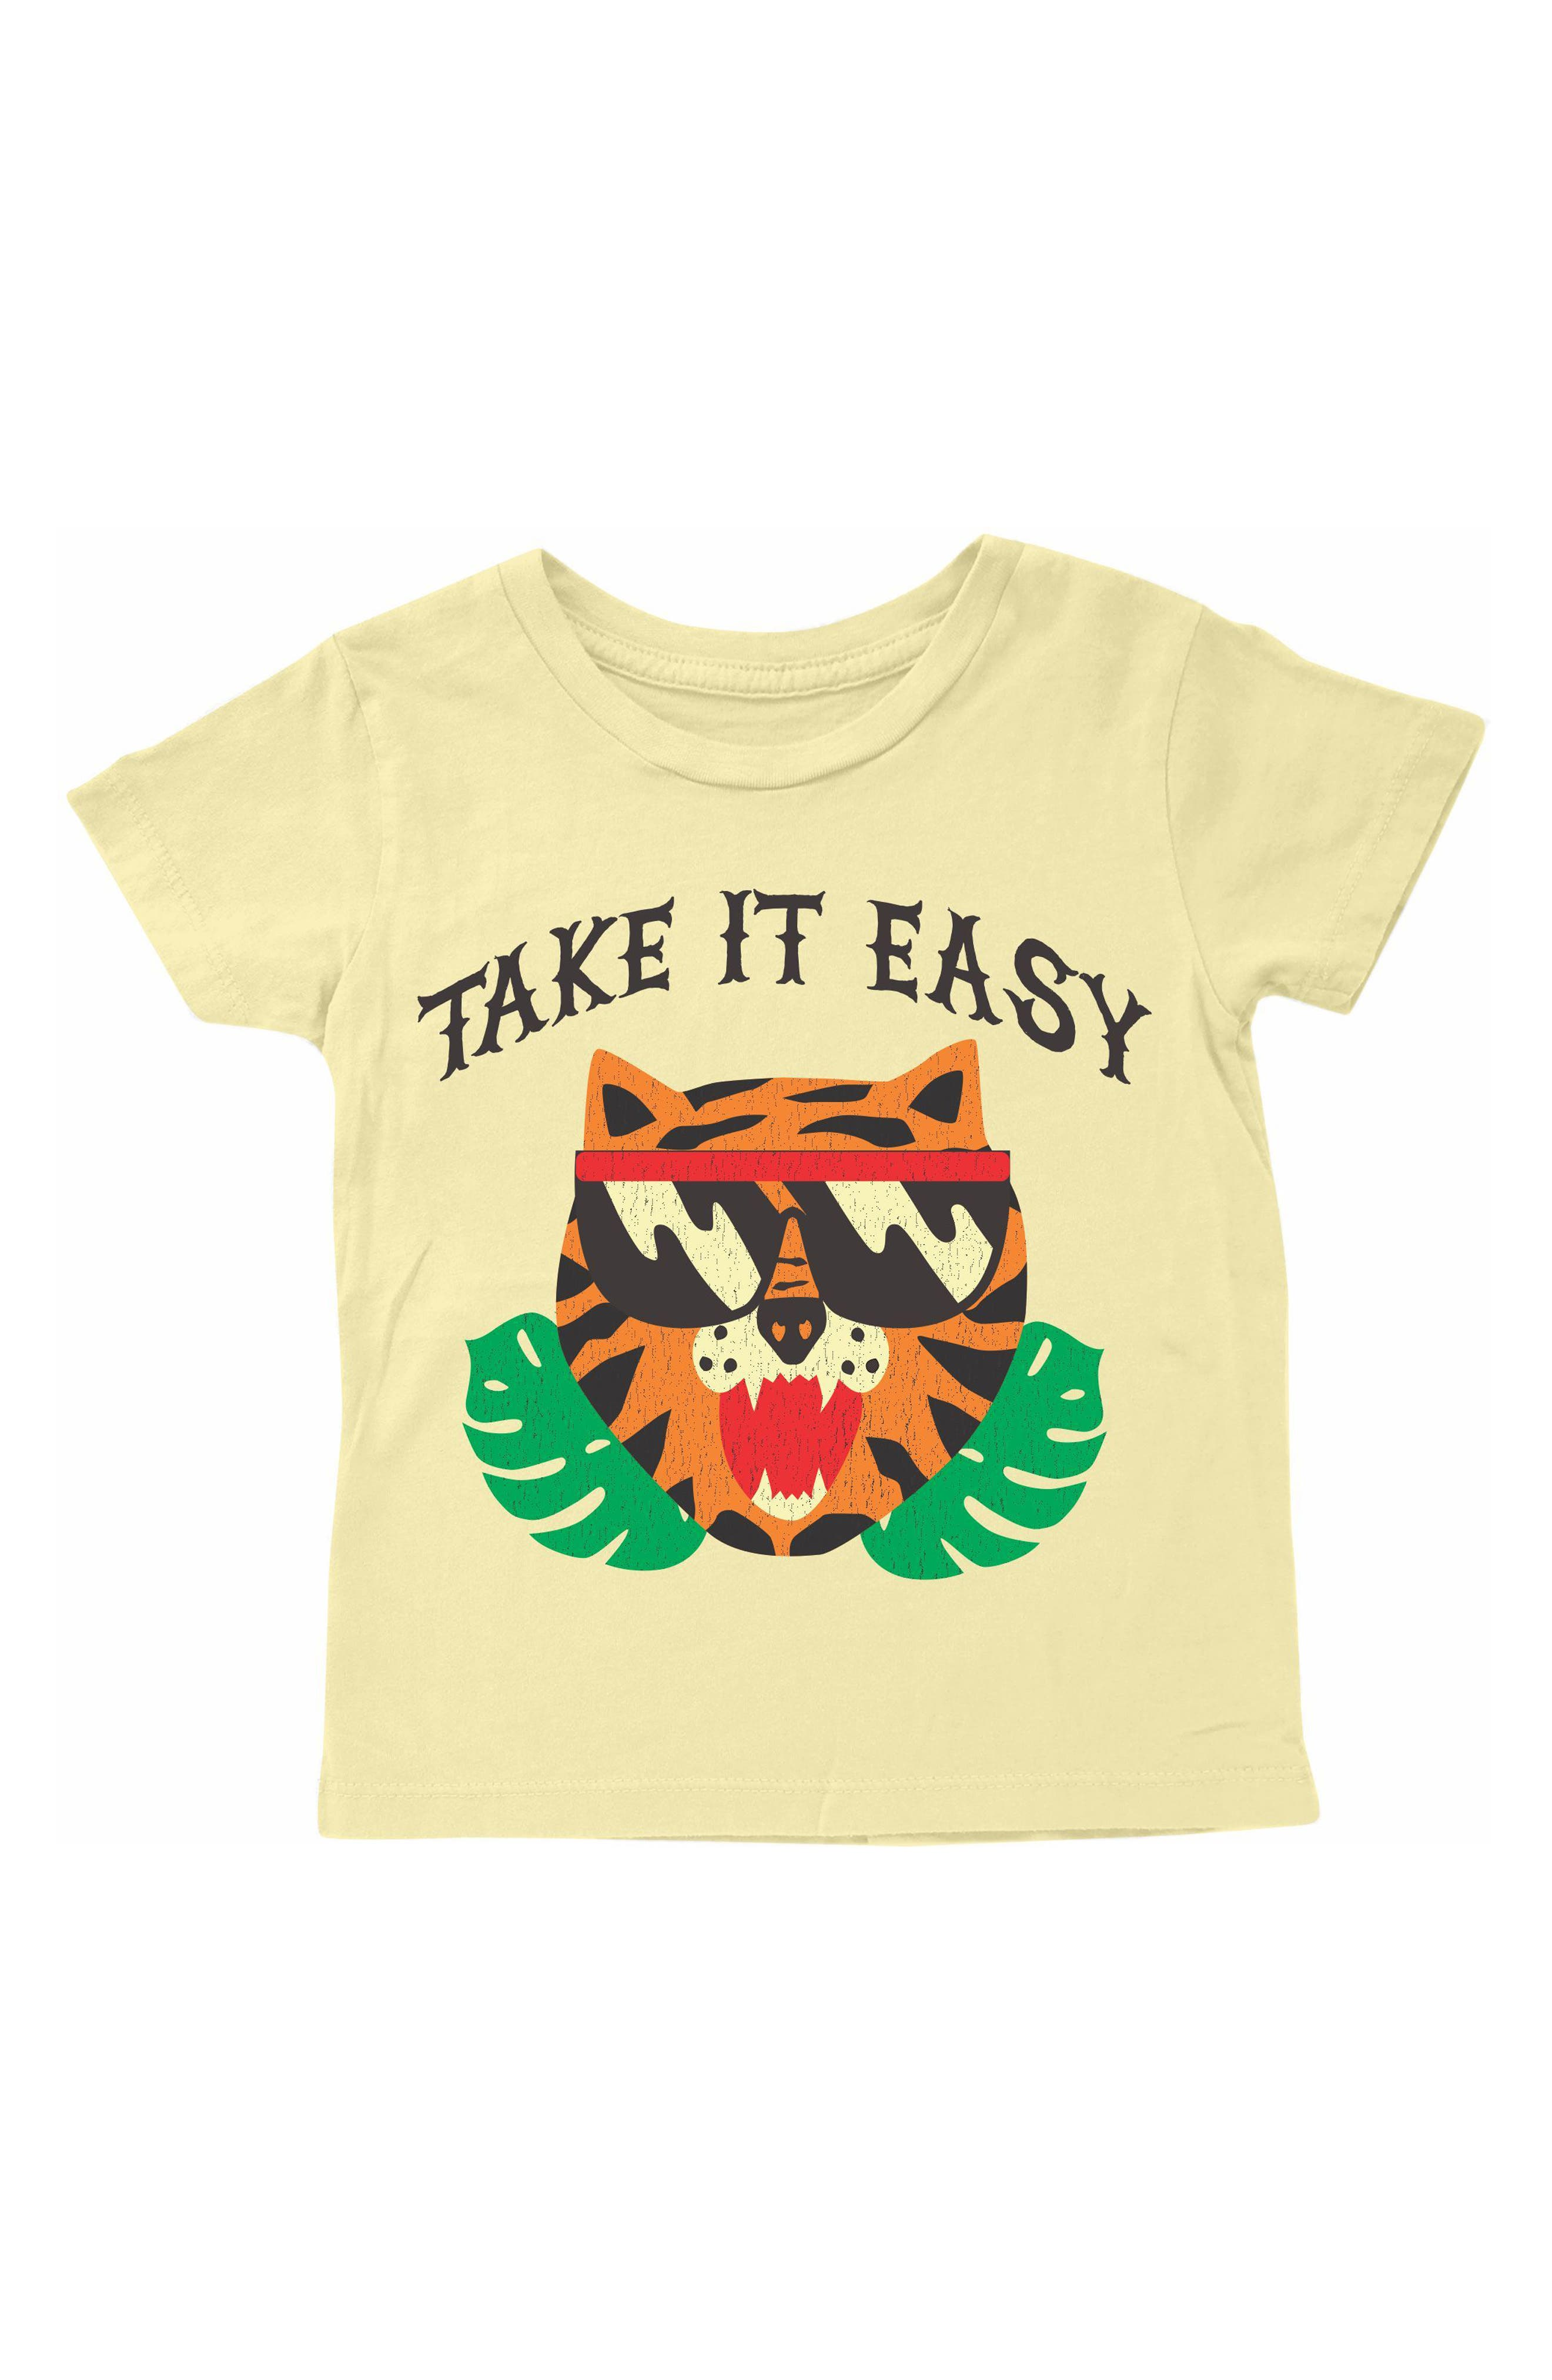 Take It Easy T-Shirt,                         Main,                         color, Light Yellow